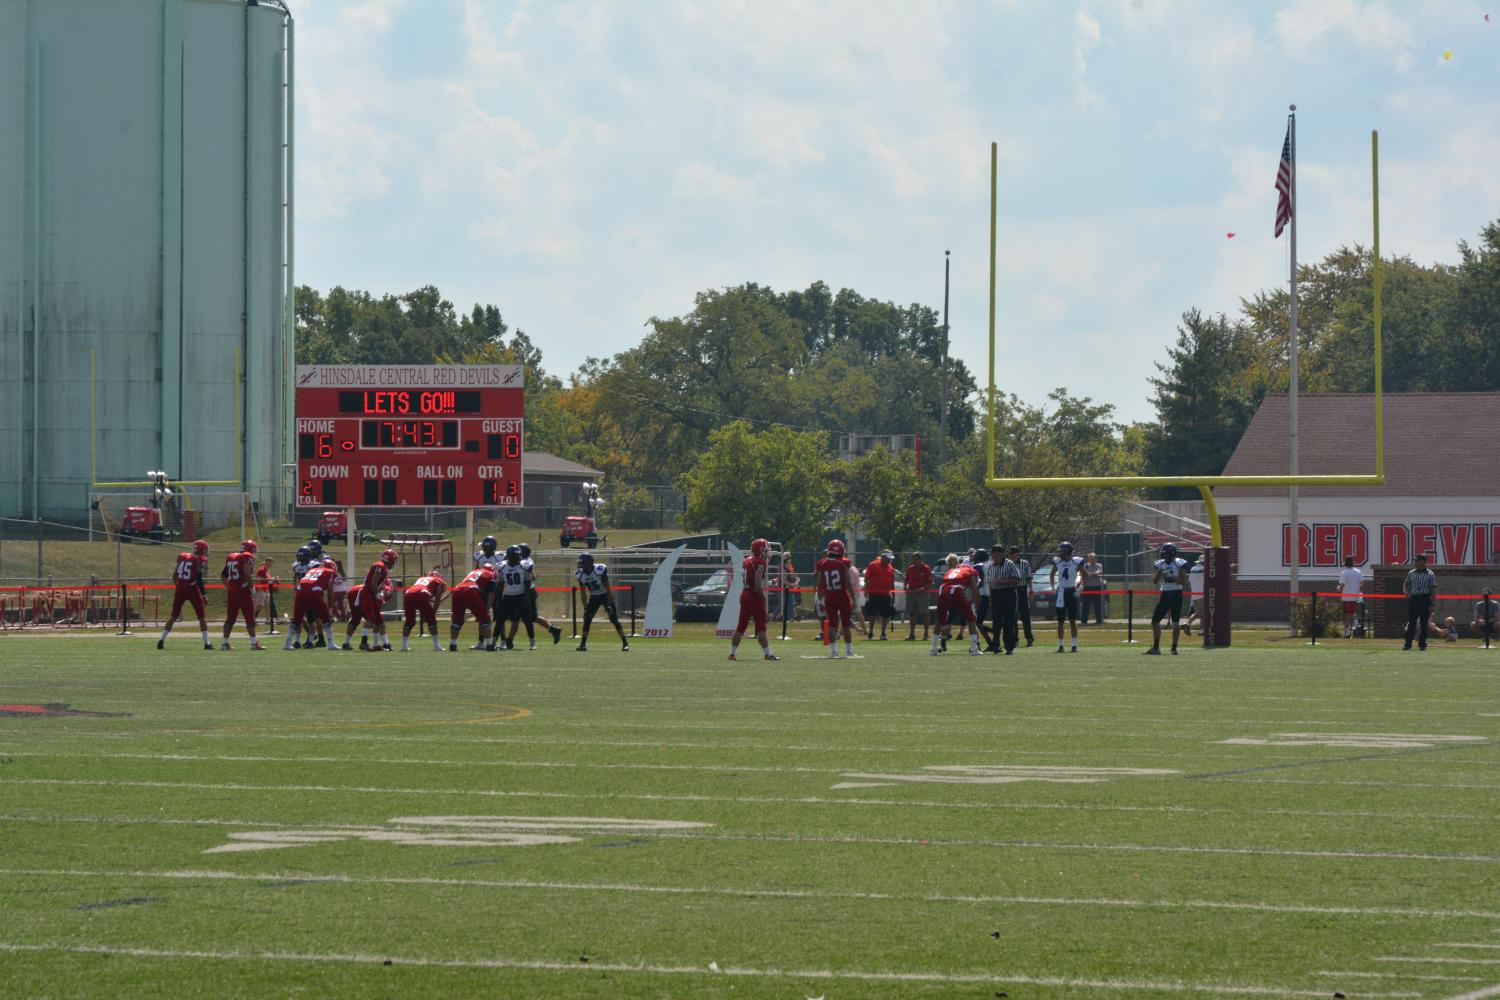 Under the blazing sun, the Red Devils came out victorious against the Trojans.